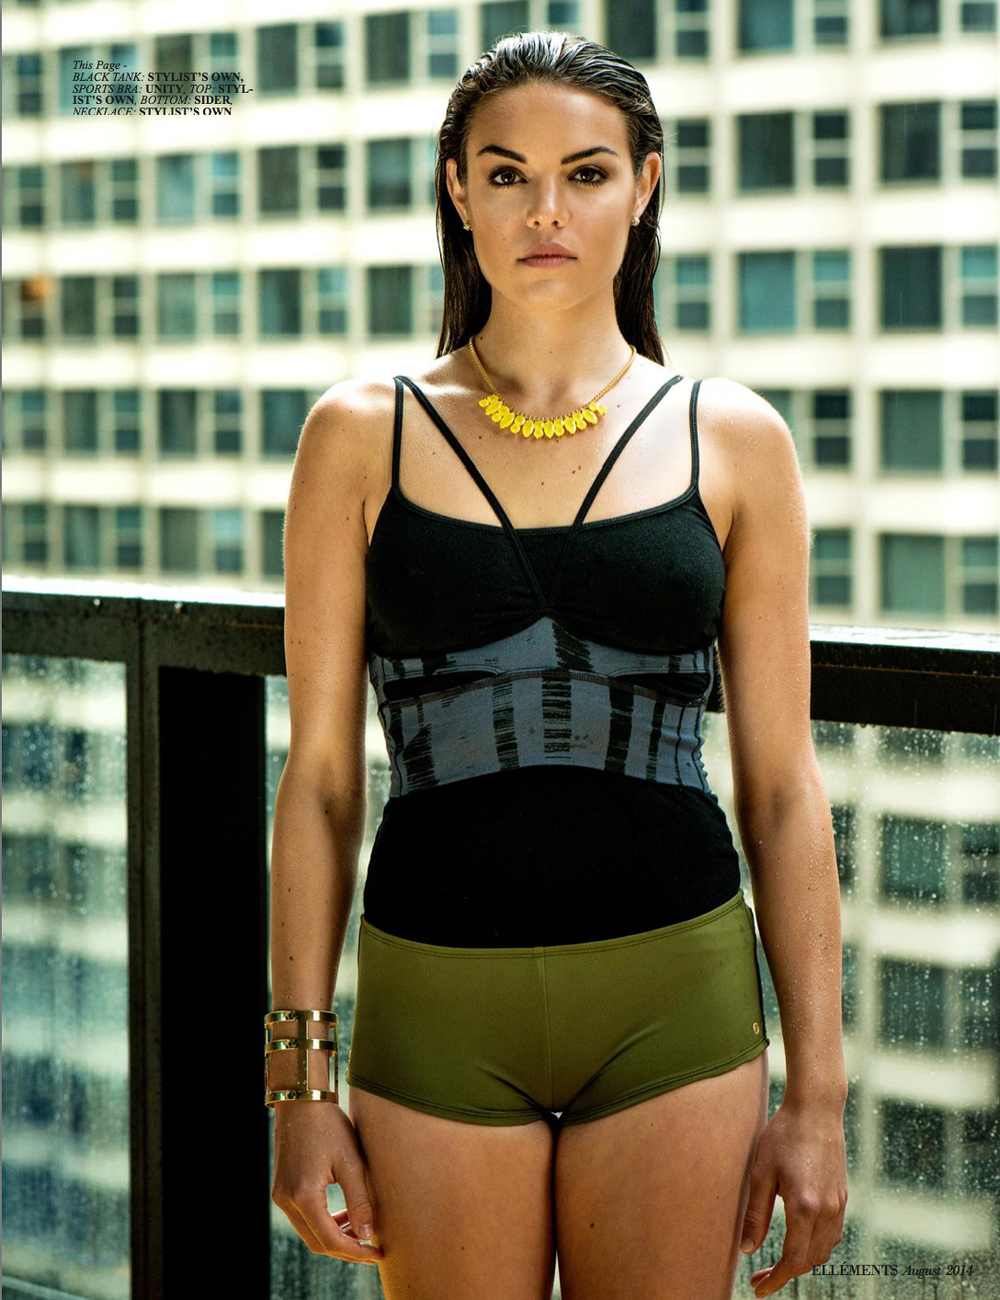 nina-ottolino-swim-city-ellements-magazine-chicago-editorial2